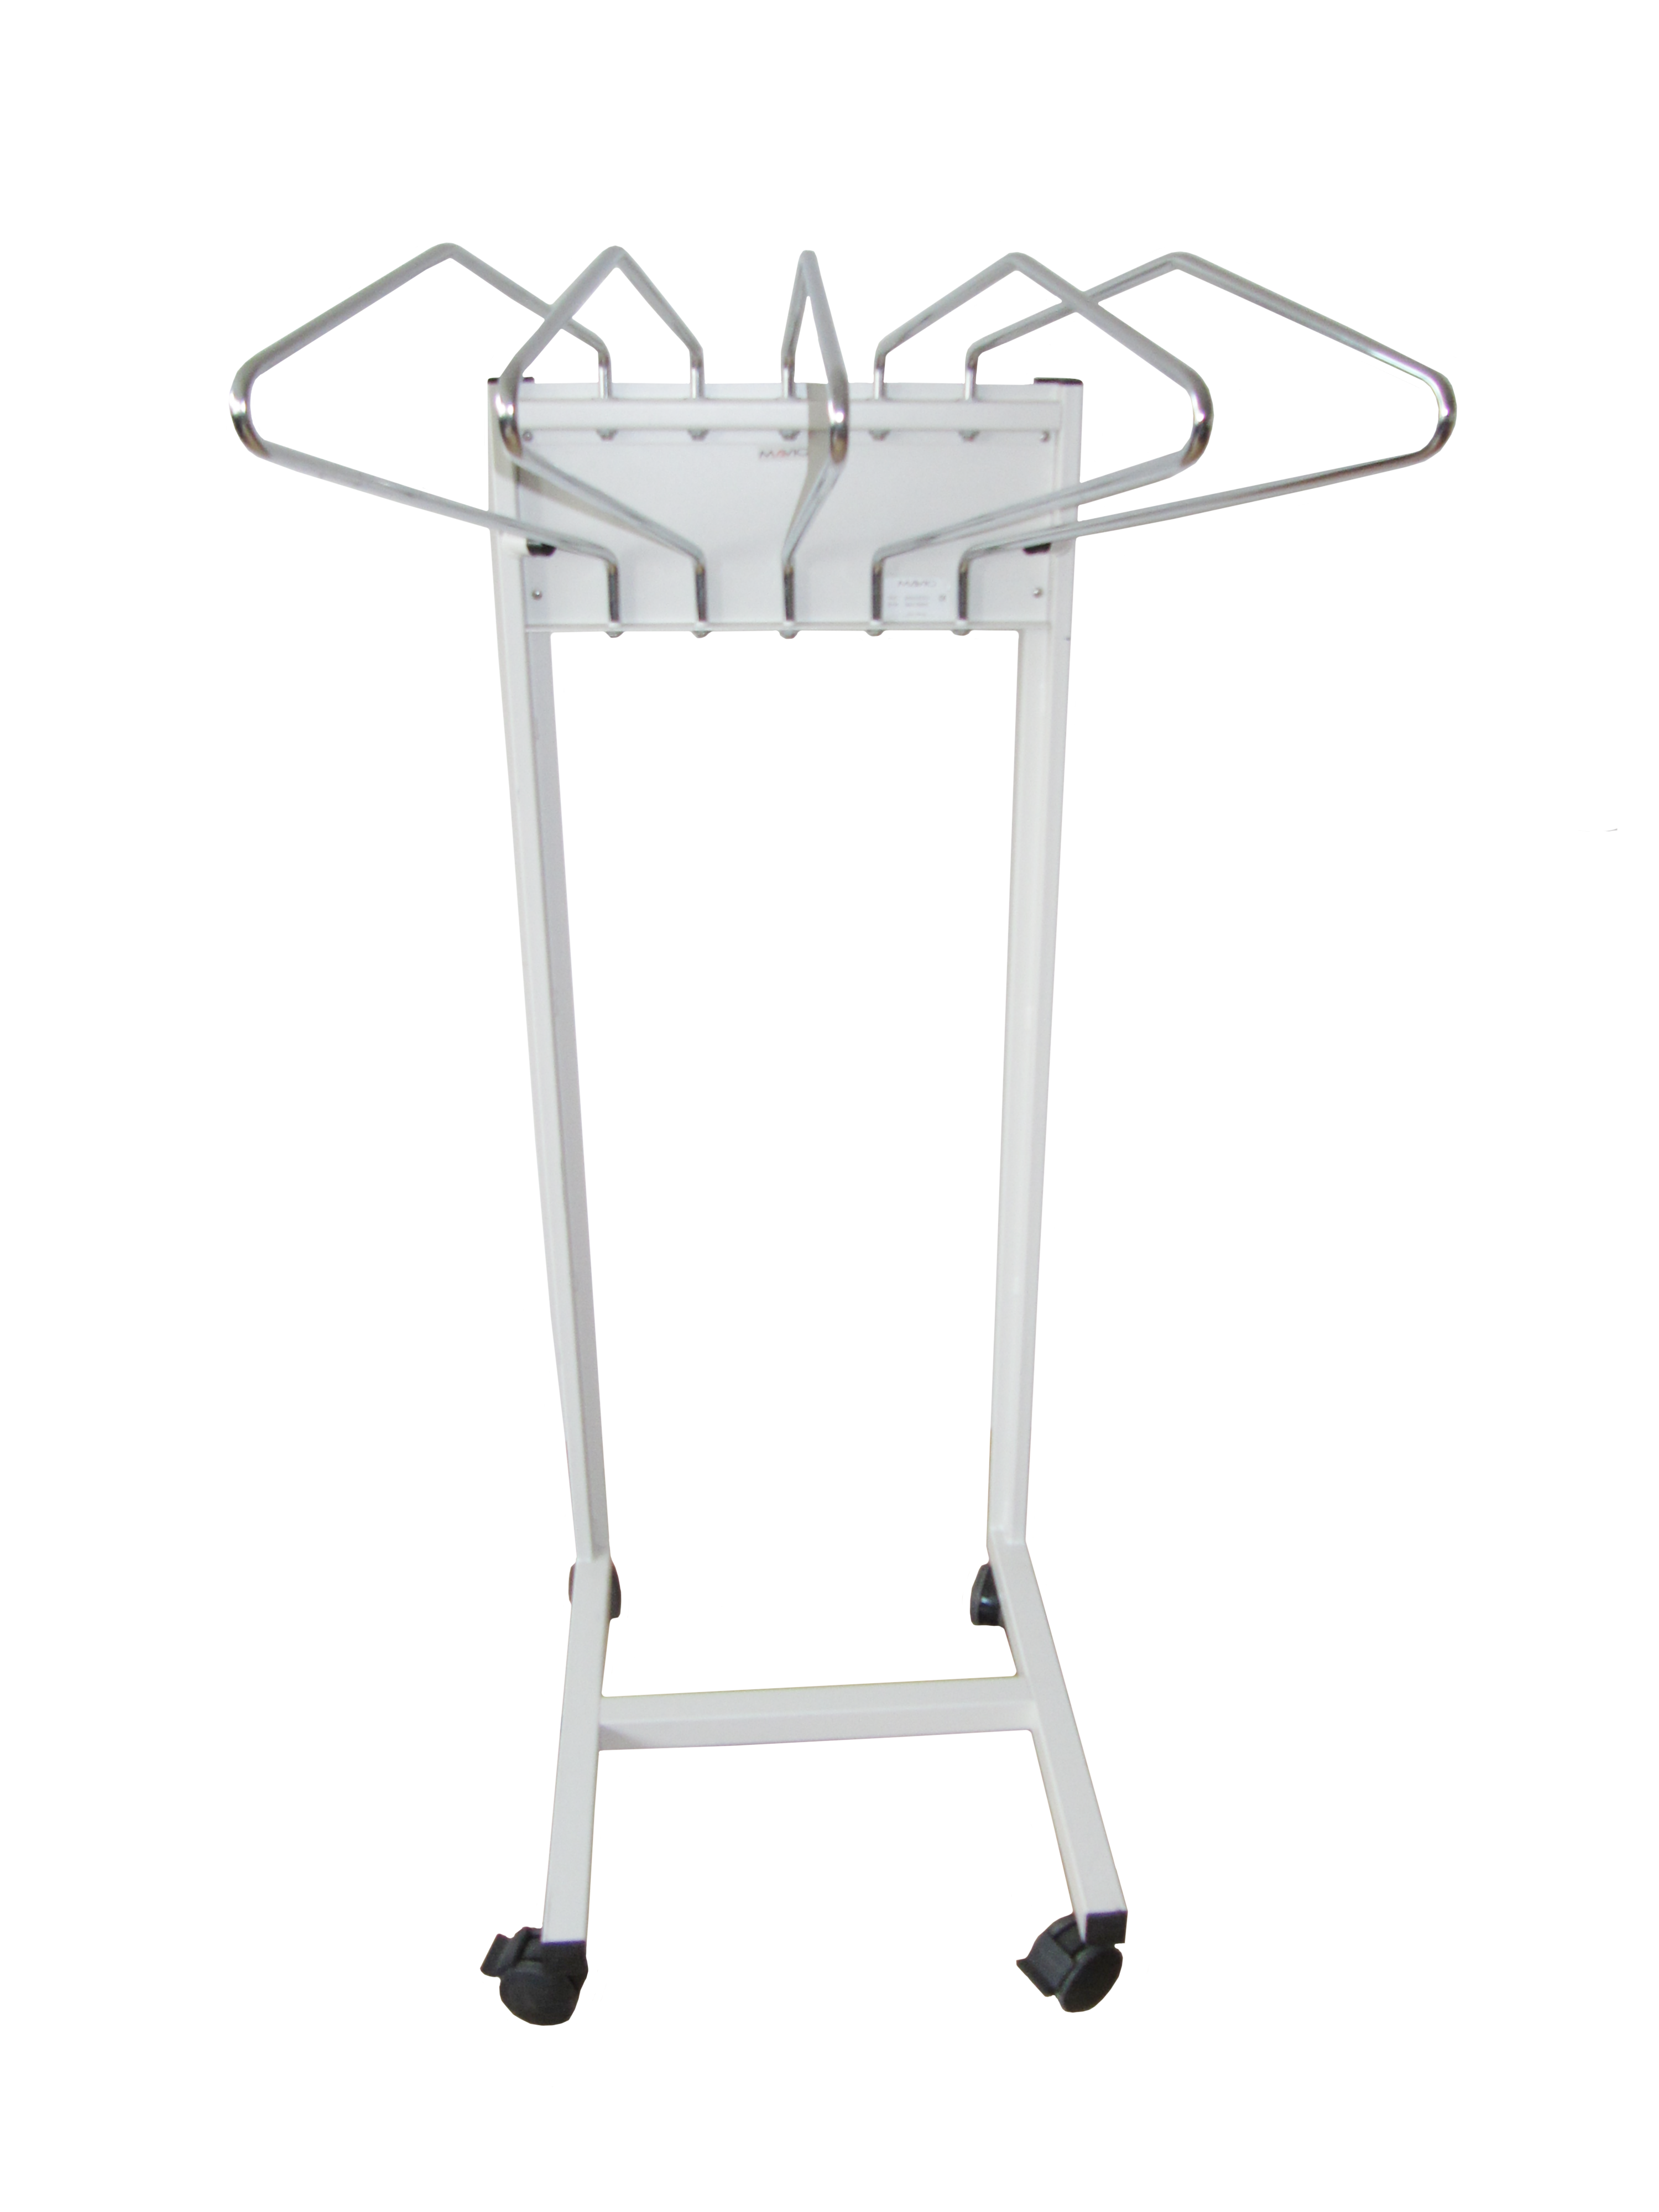 Mobile apron rack - 5-arm